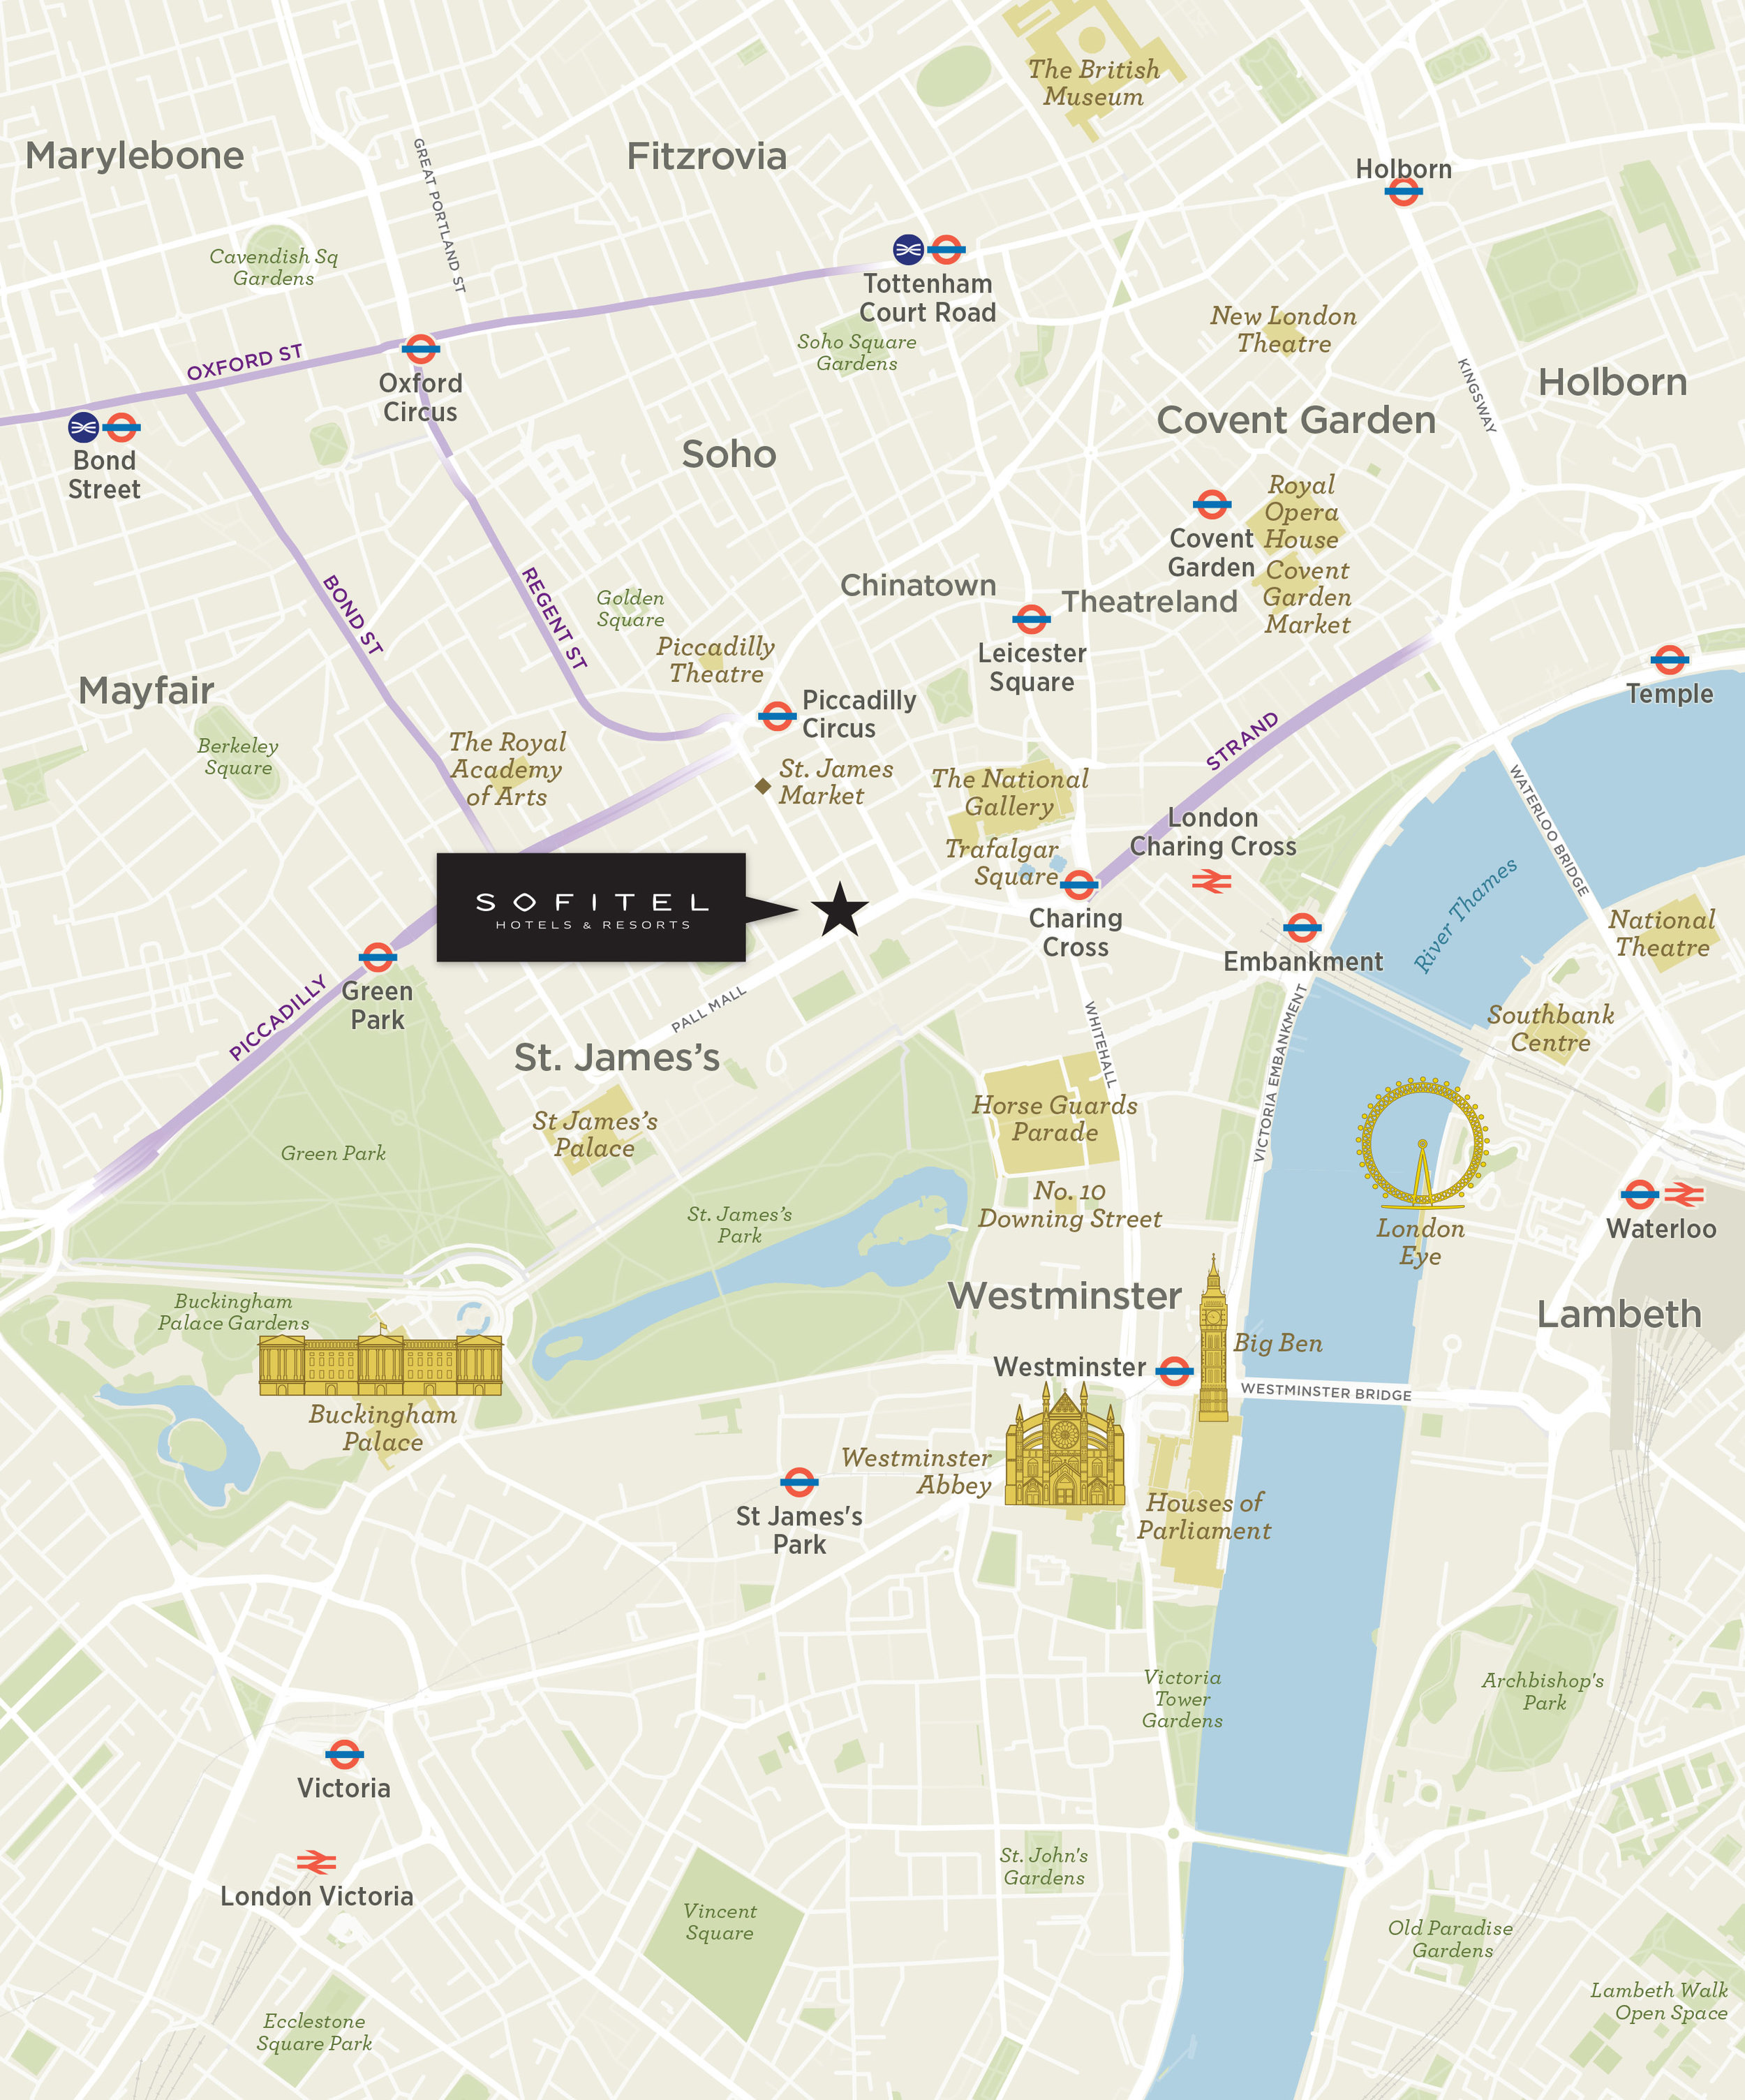 london illustrated landmarks tourist map.jpg